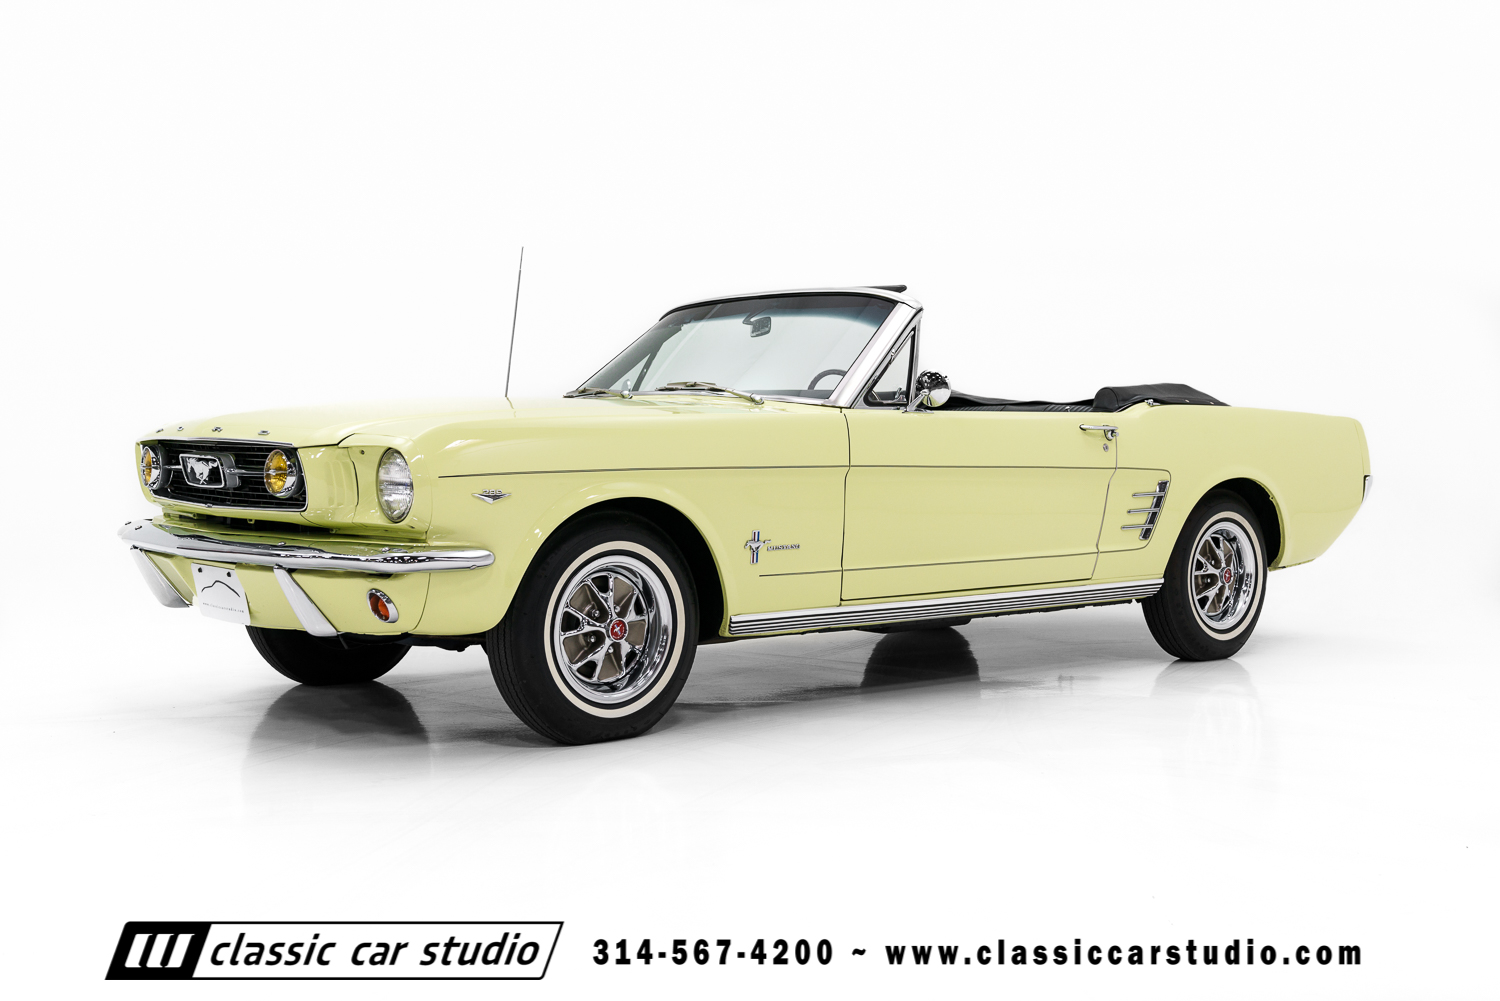 Chevrolet Vin Window Sticker >> 1966 Ford Mustang | Classic Car Studio